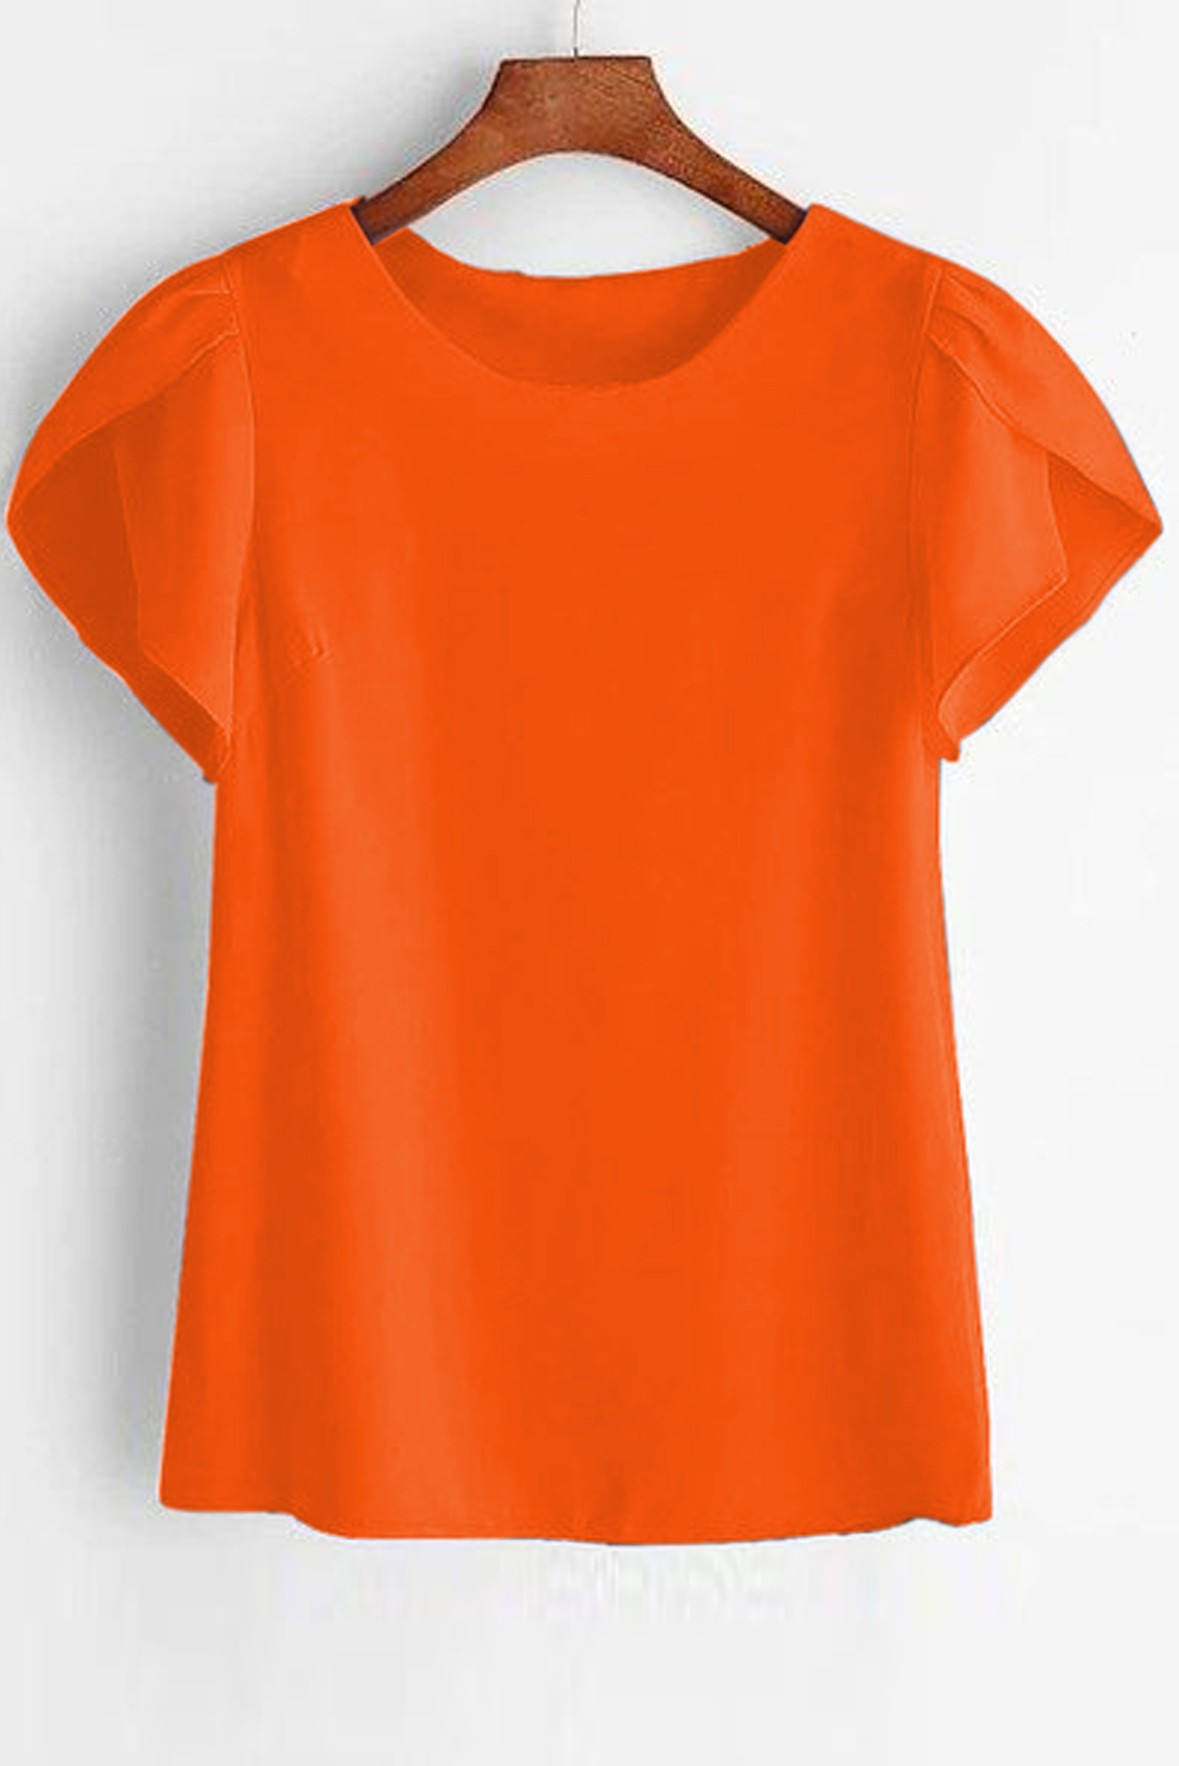 Petal Sleeve Solid Orange Top